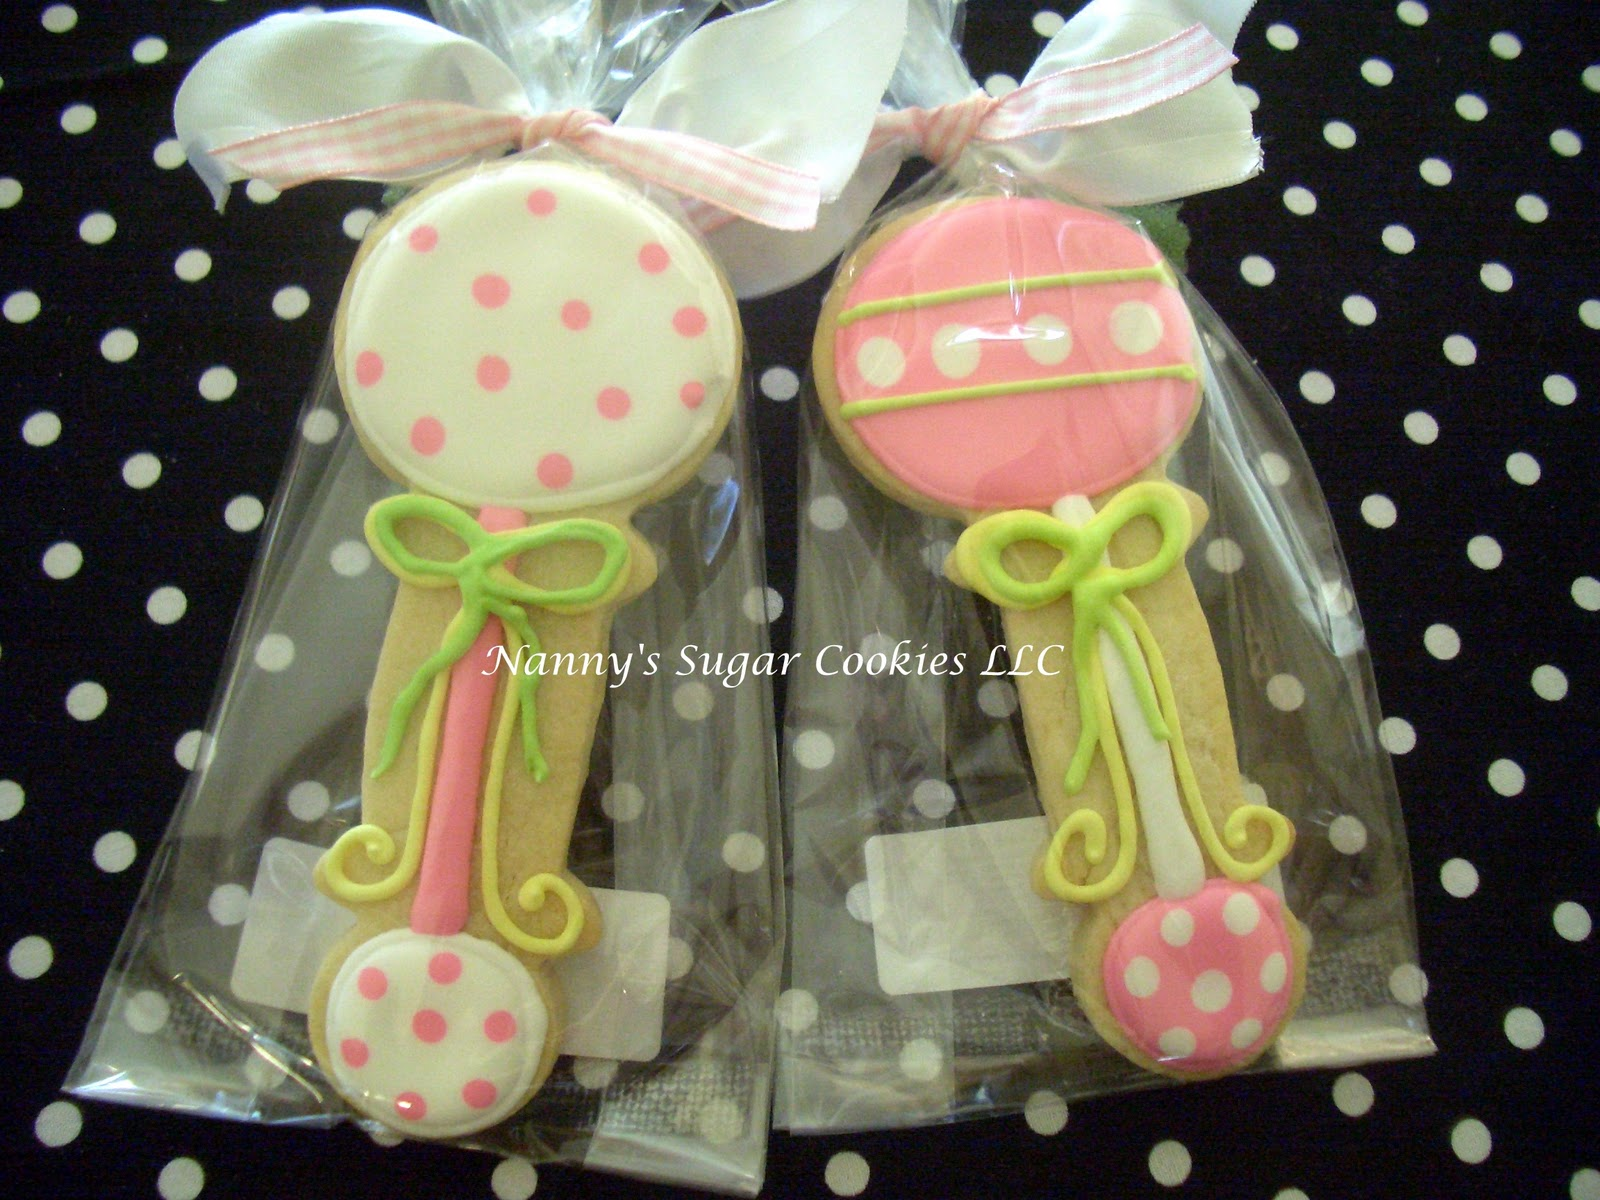 received a phone call for this order of baby shower cookie favors